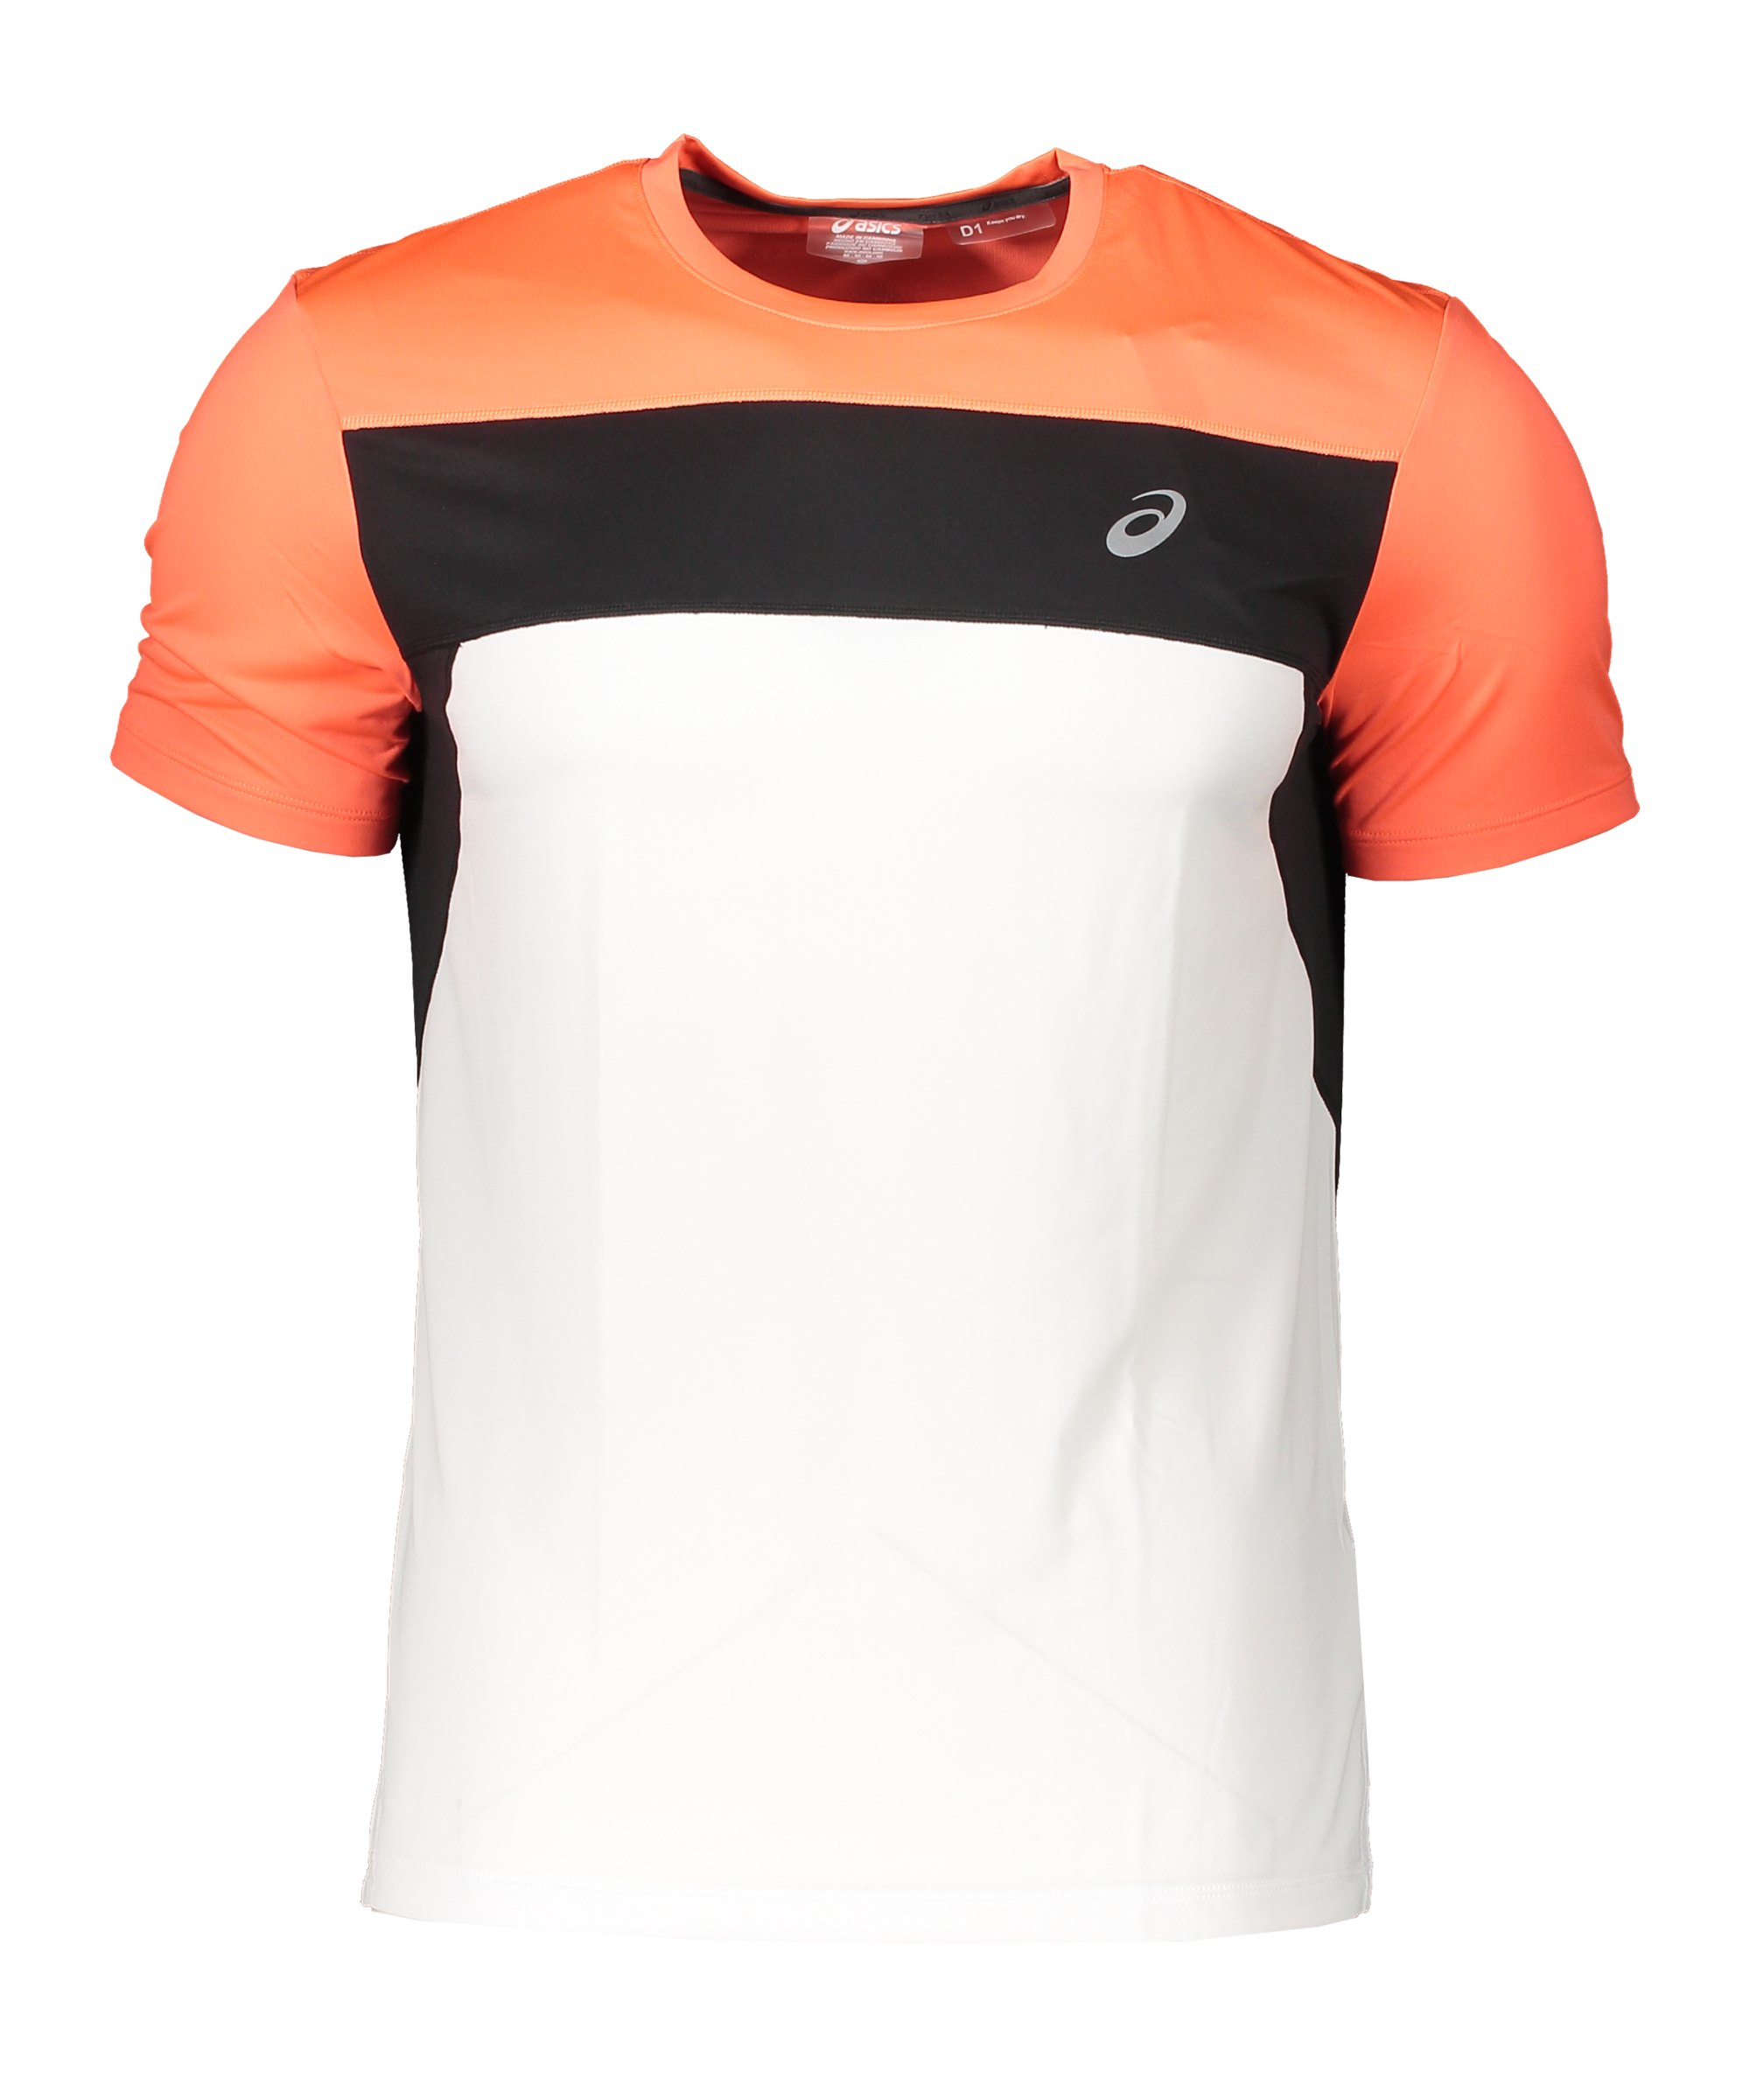 Asics Race SS Running T-Shirt Weiss Orange F103 - weiss